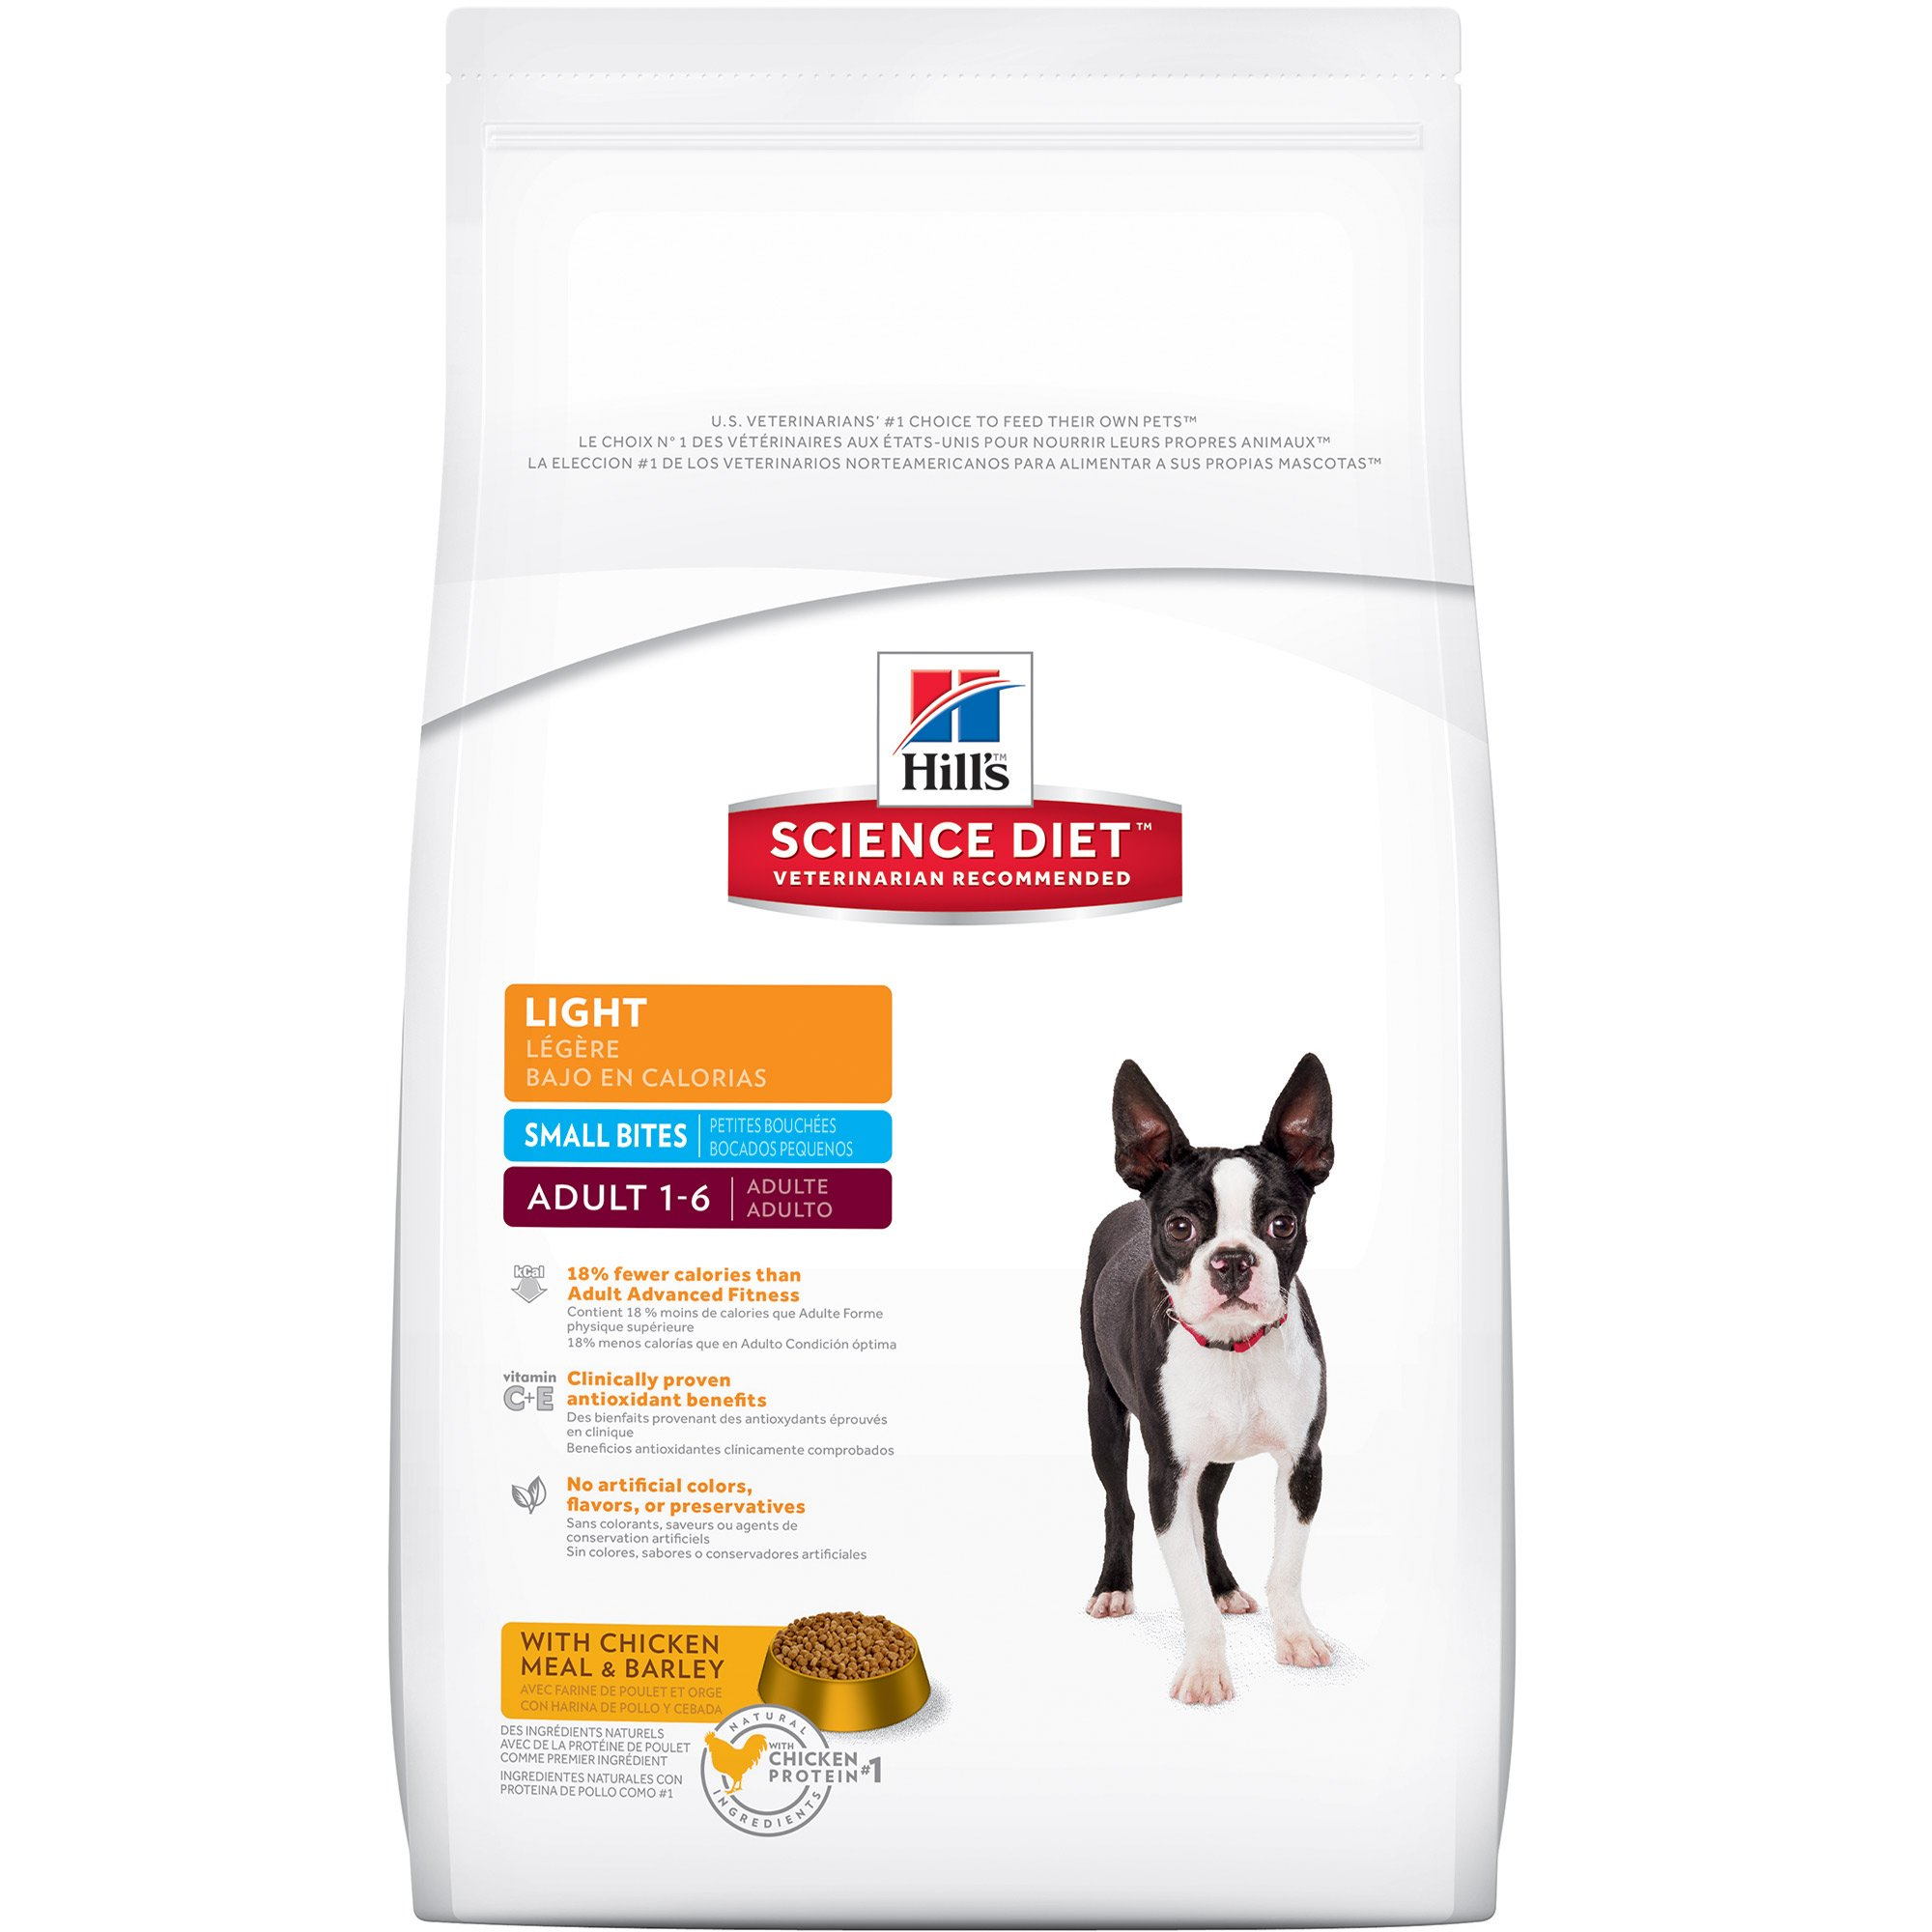 Hill's Science Diet Adult Light Dog Food, Small Bites with Chicken Meal & Barley for weight management, Dry Dog Food, 33 lb Bag